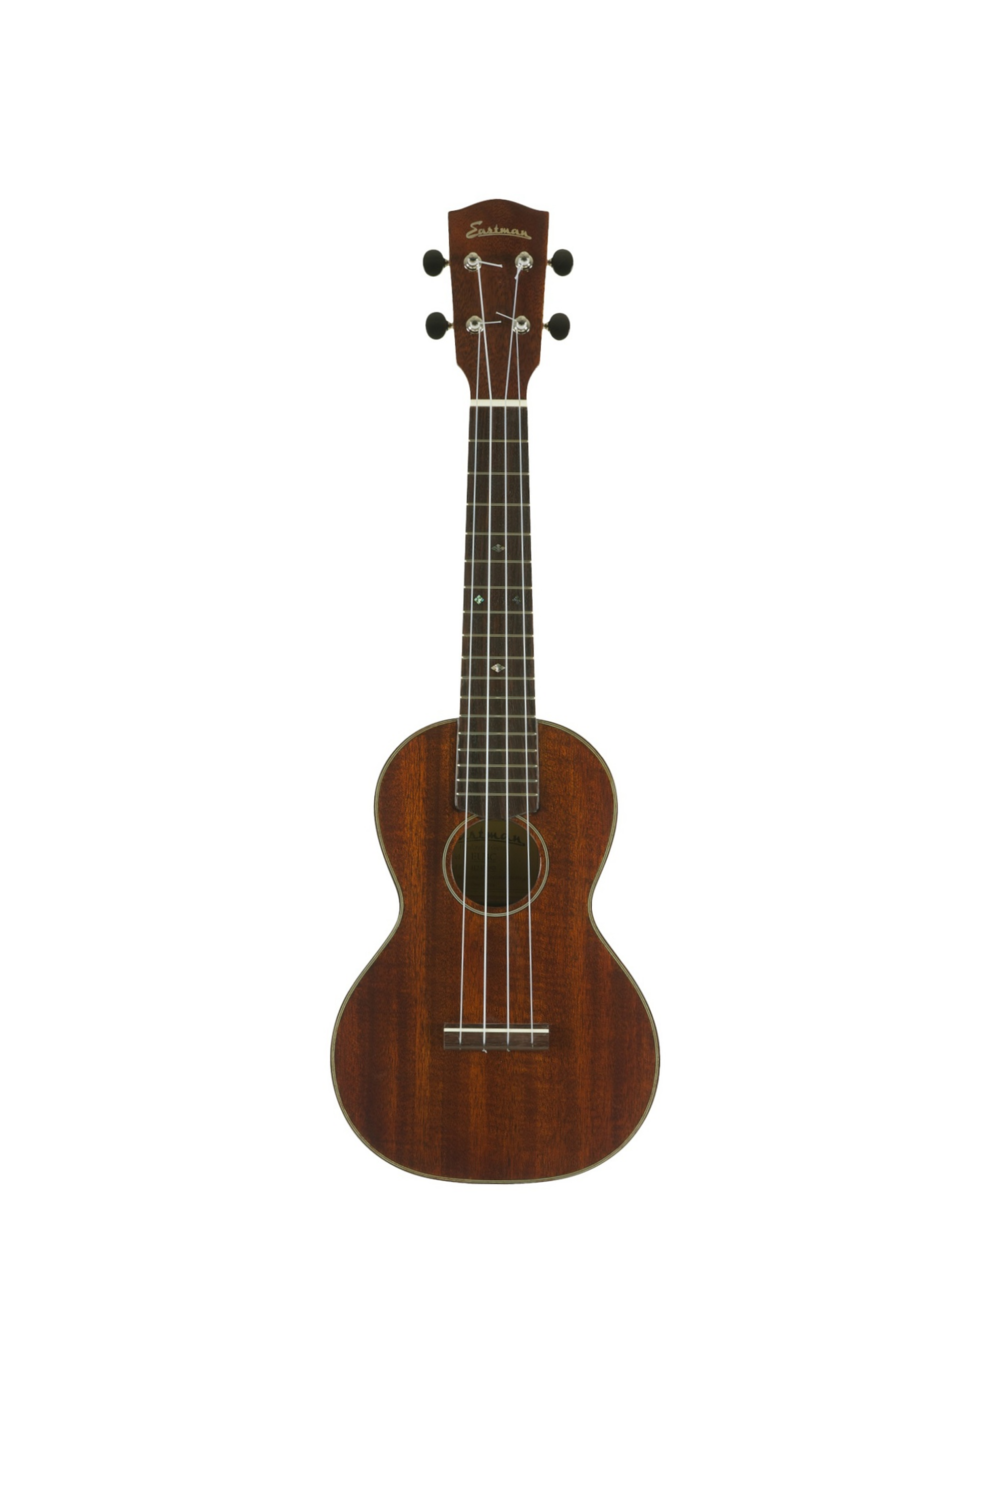 UKELELE Fretted instruments were first introduced to Hawaii by Portuguese immigrants in the nineteenth century and by the early twentieth century, the island variations of these instruments known as ukuleles began to make their way to the mainland United States. Eastman Guitars is introducing the Traditional Series EU3S Soprano Ukulele, EU3C Concert Ukulele and the EU3T Tenor Ukulele.